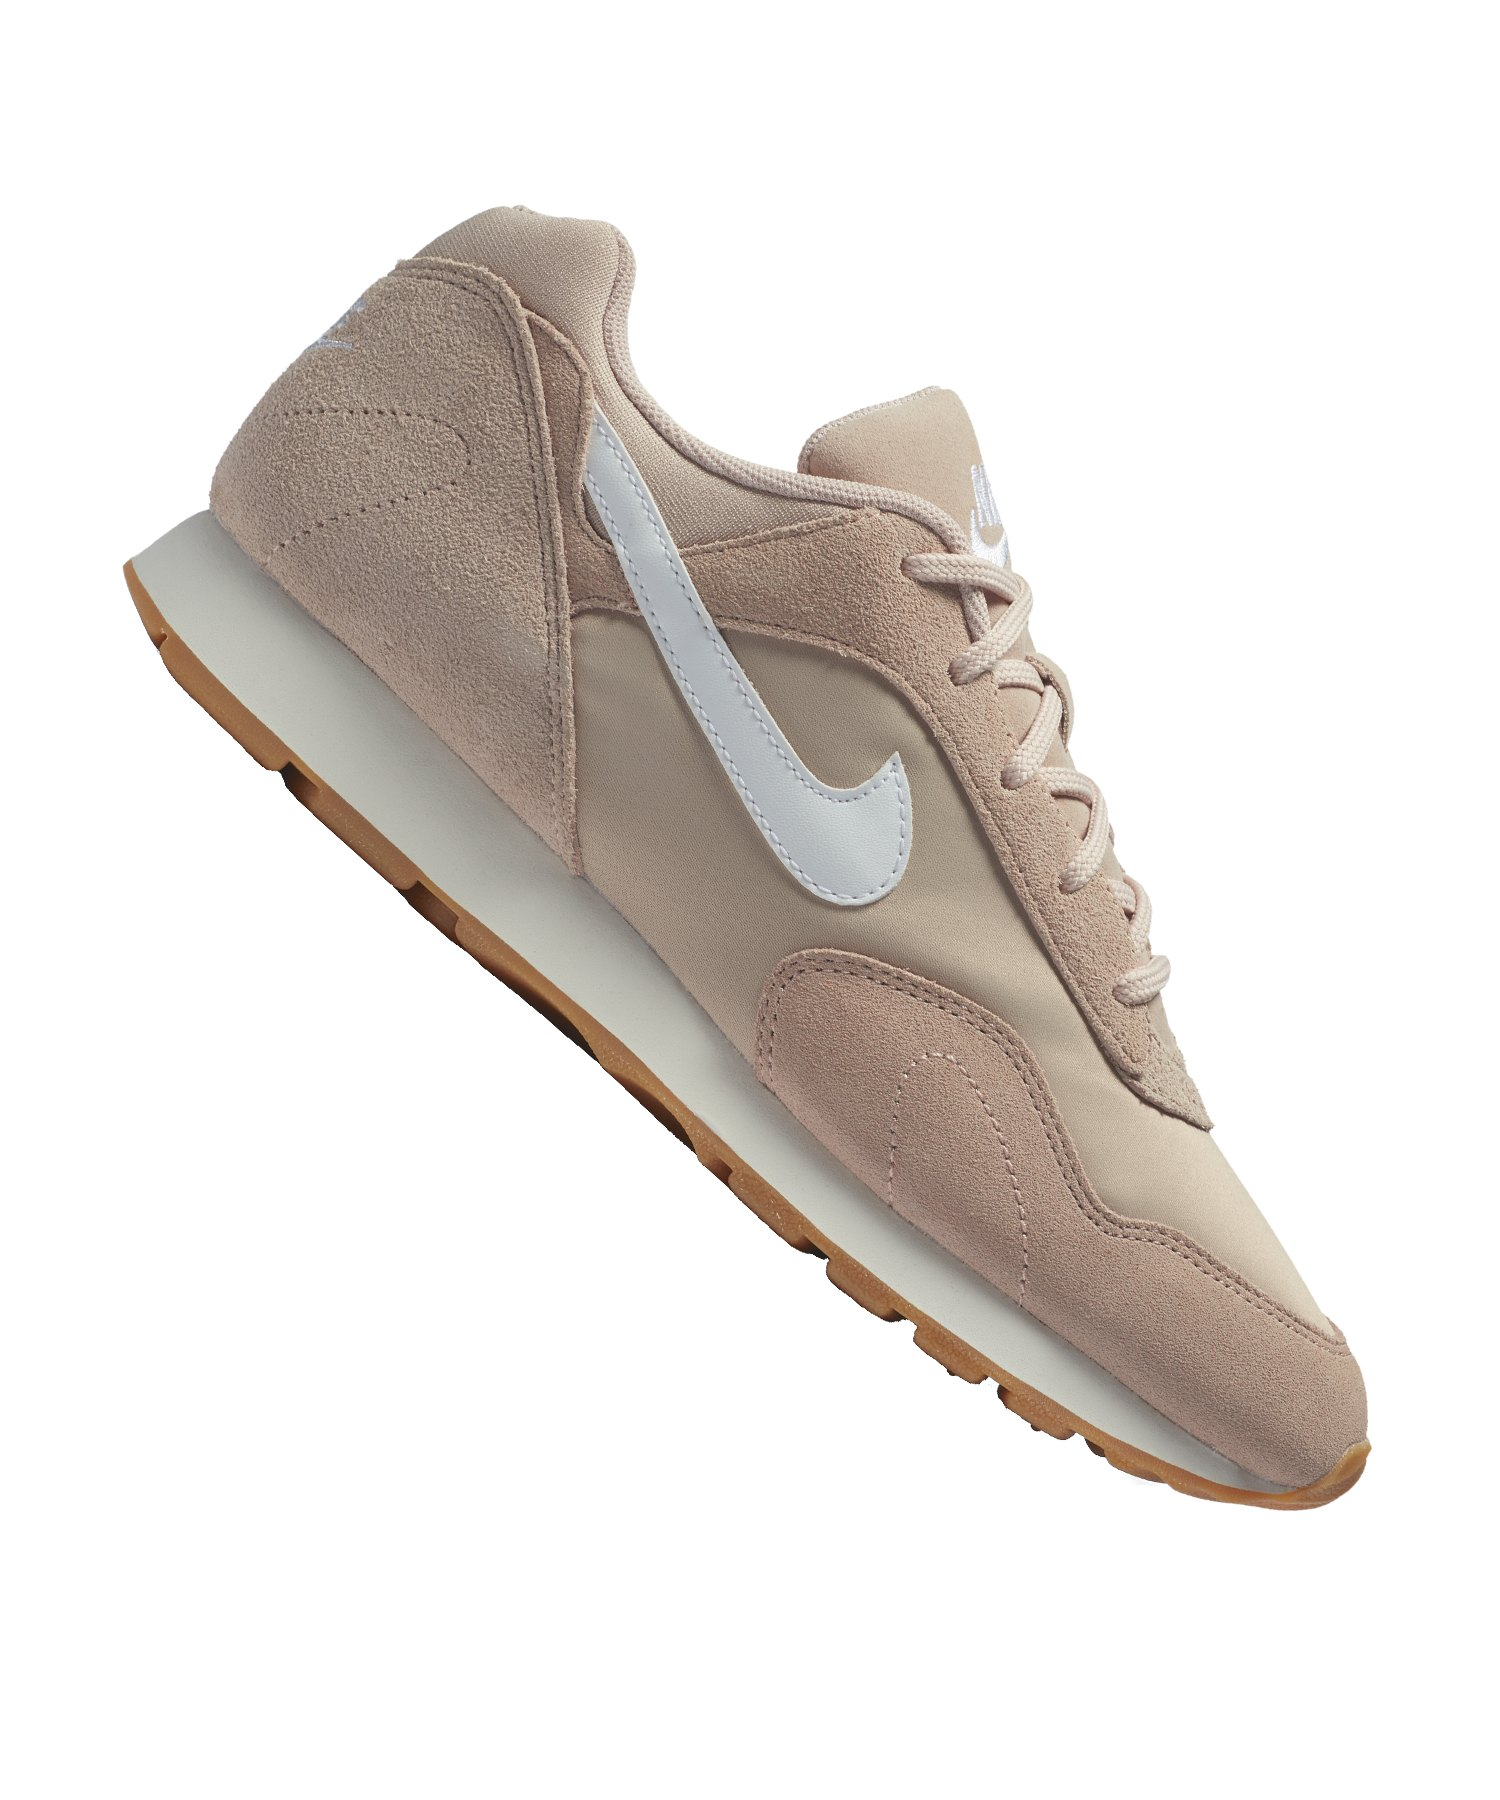 cheap for discount 22d08 b8377 Nike Outburst Sneaker Damen Beige F200